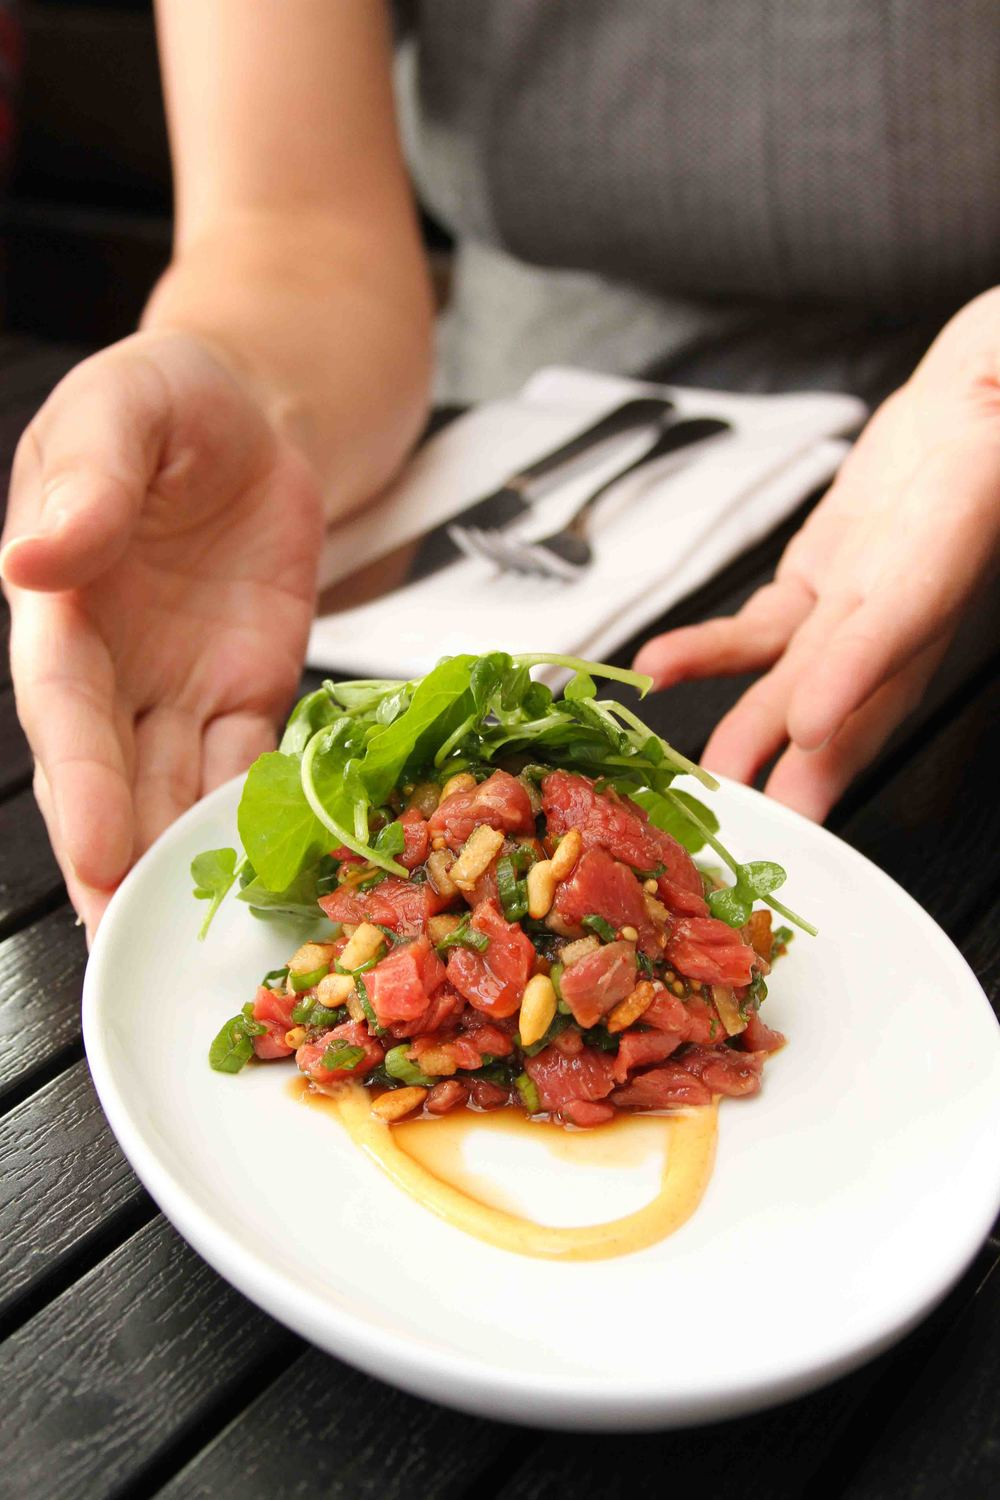 I recently made yukhoe (Korean beef tartare), so I was excited to try my cousin's version. The Asian pear and pine nuts added wonderful texture to the dish.